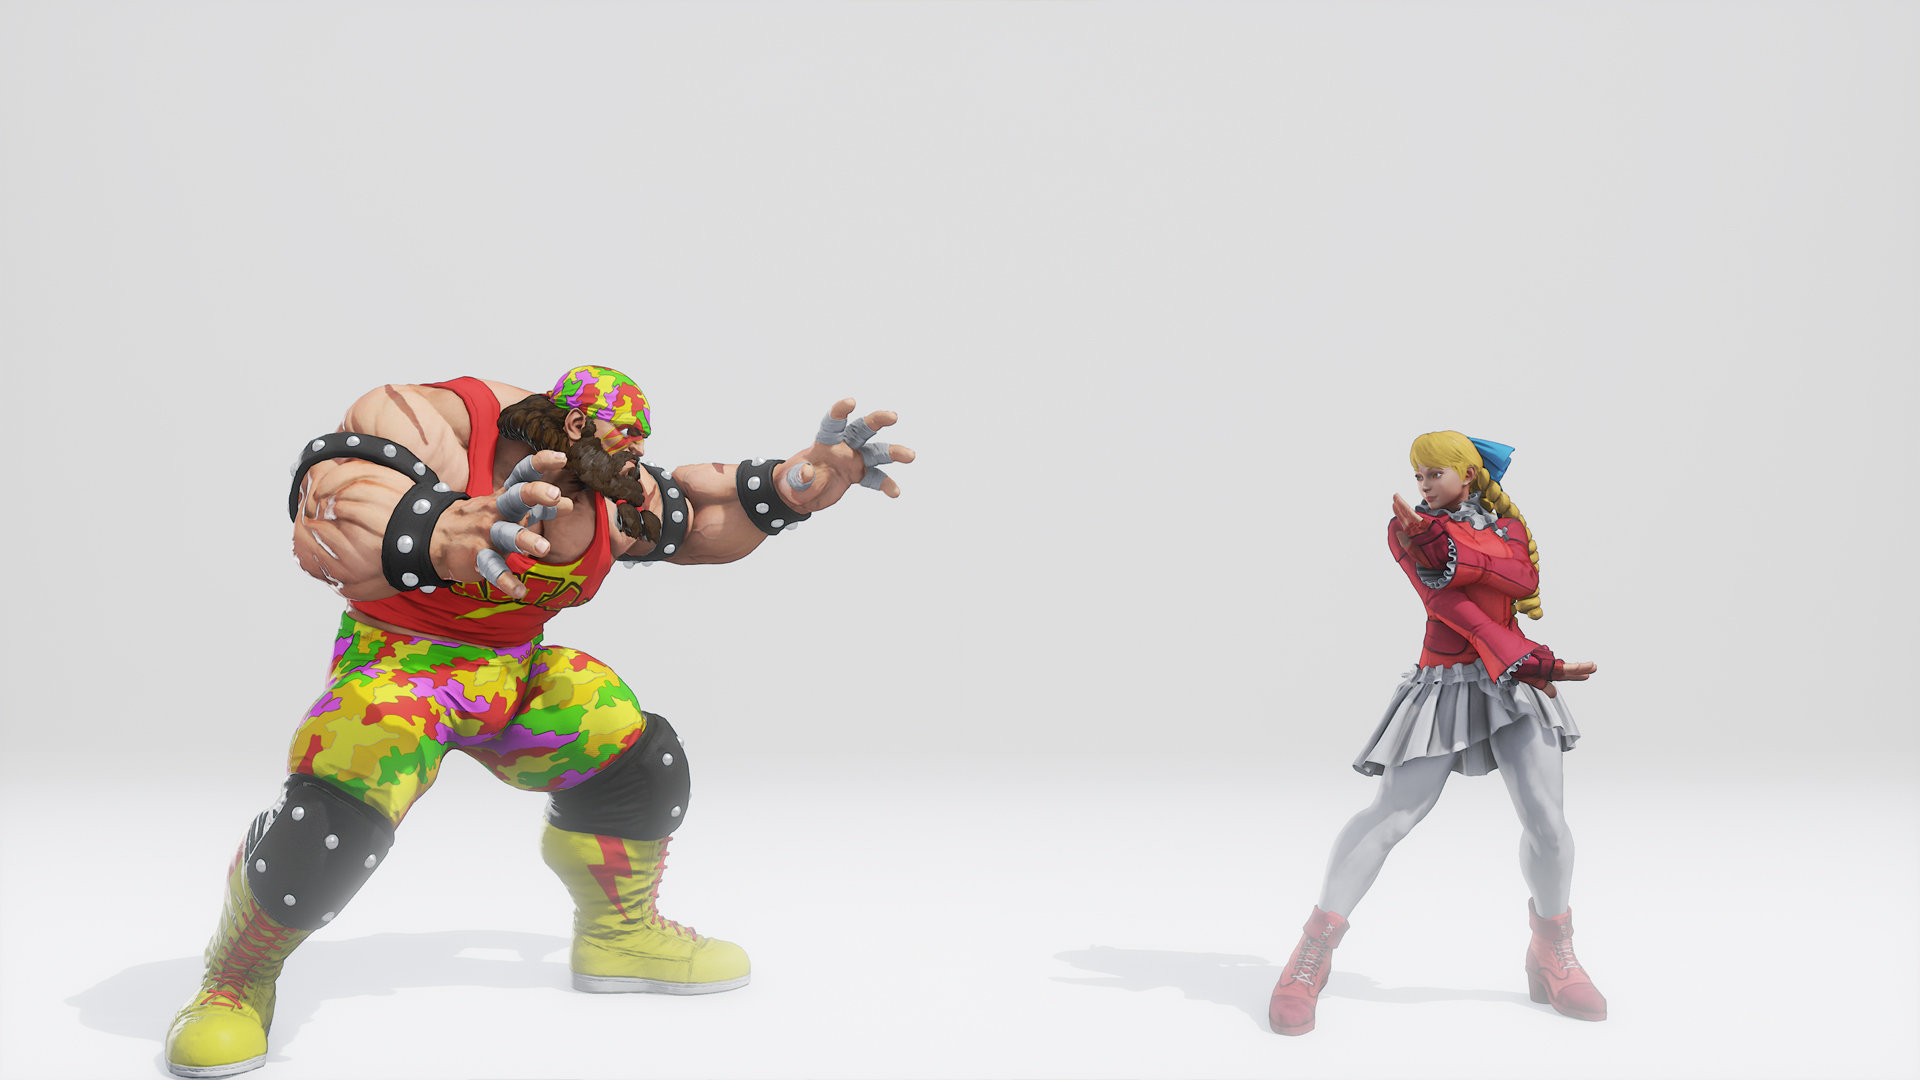 New Street Fighter 5 Costumes Leak Ahead Of March Update Shacknews